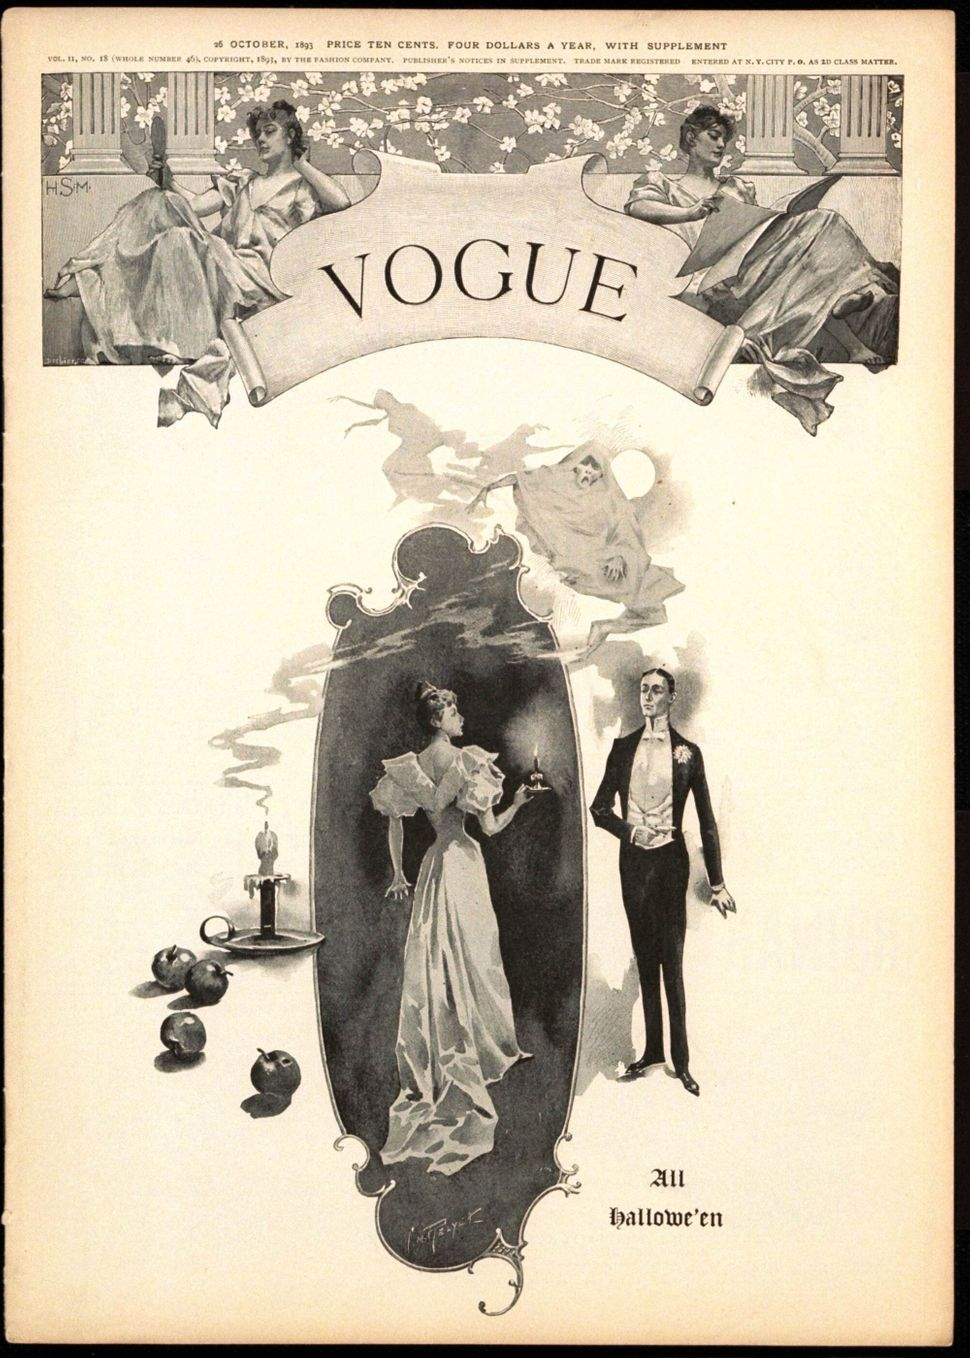 A Halloween-themed Vogue cover from 1893 shows the kind of glamorous costumes women from that era might have chosen.